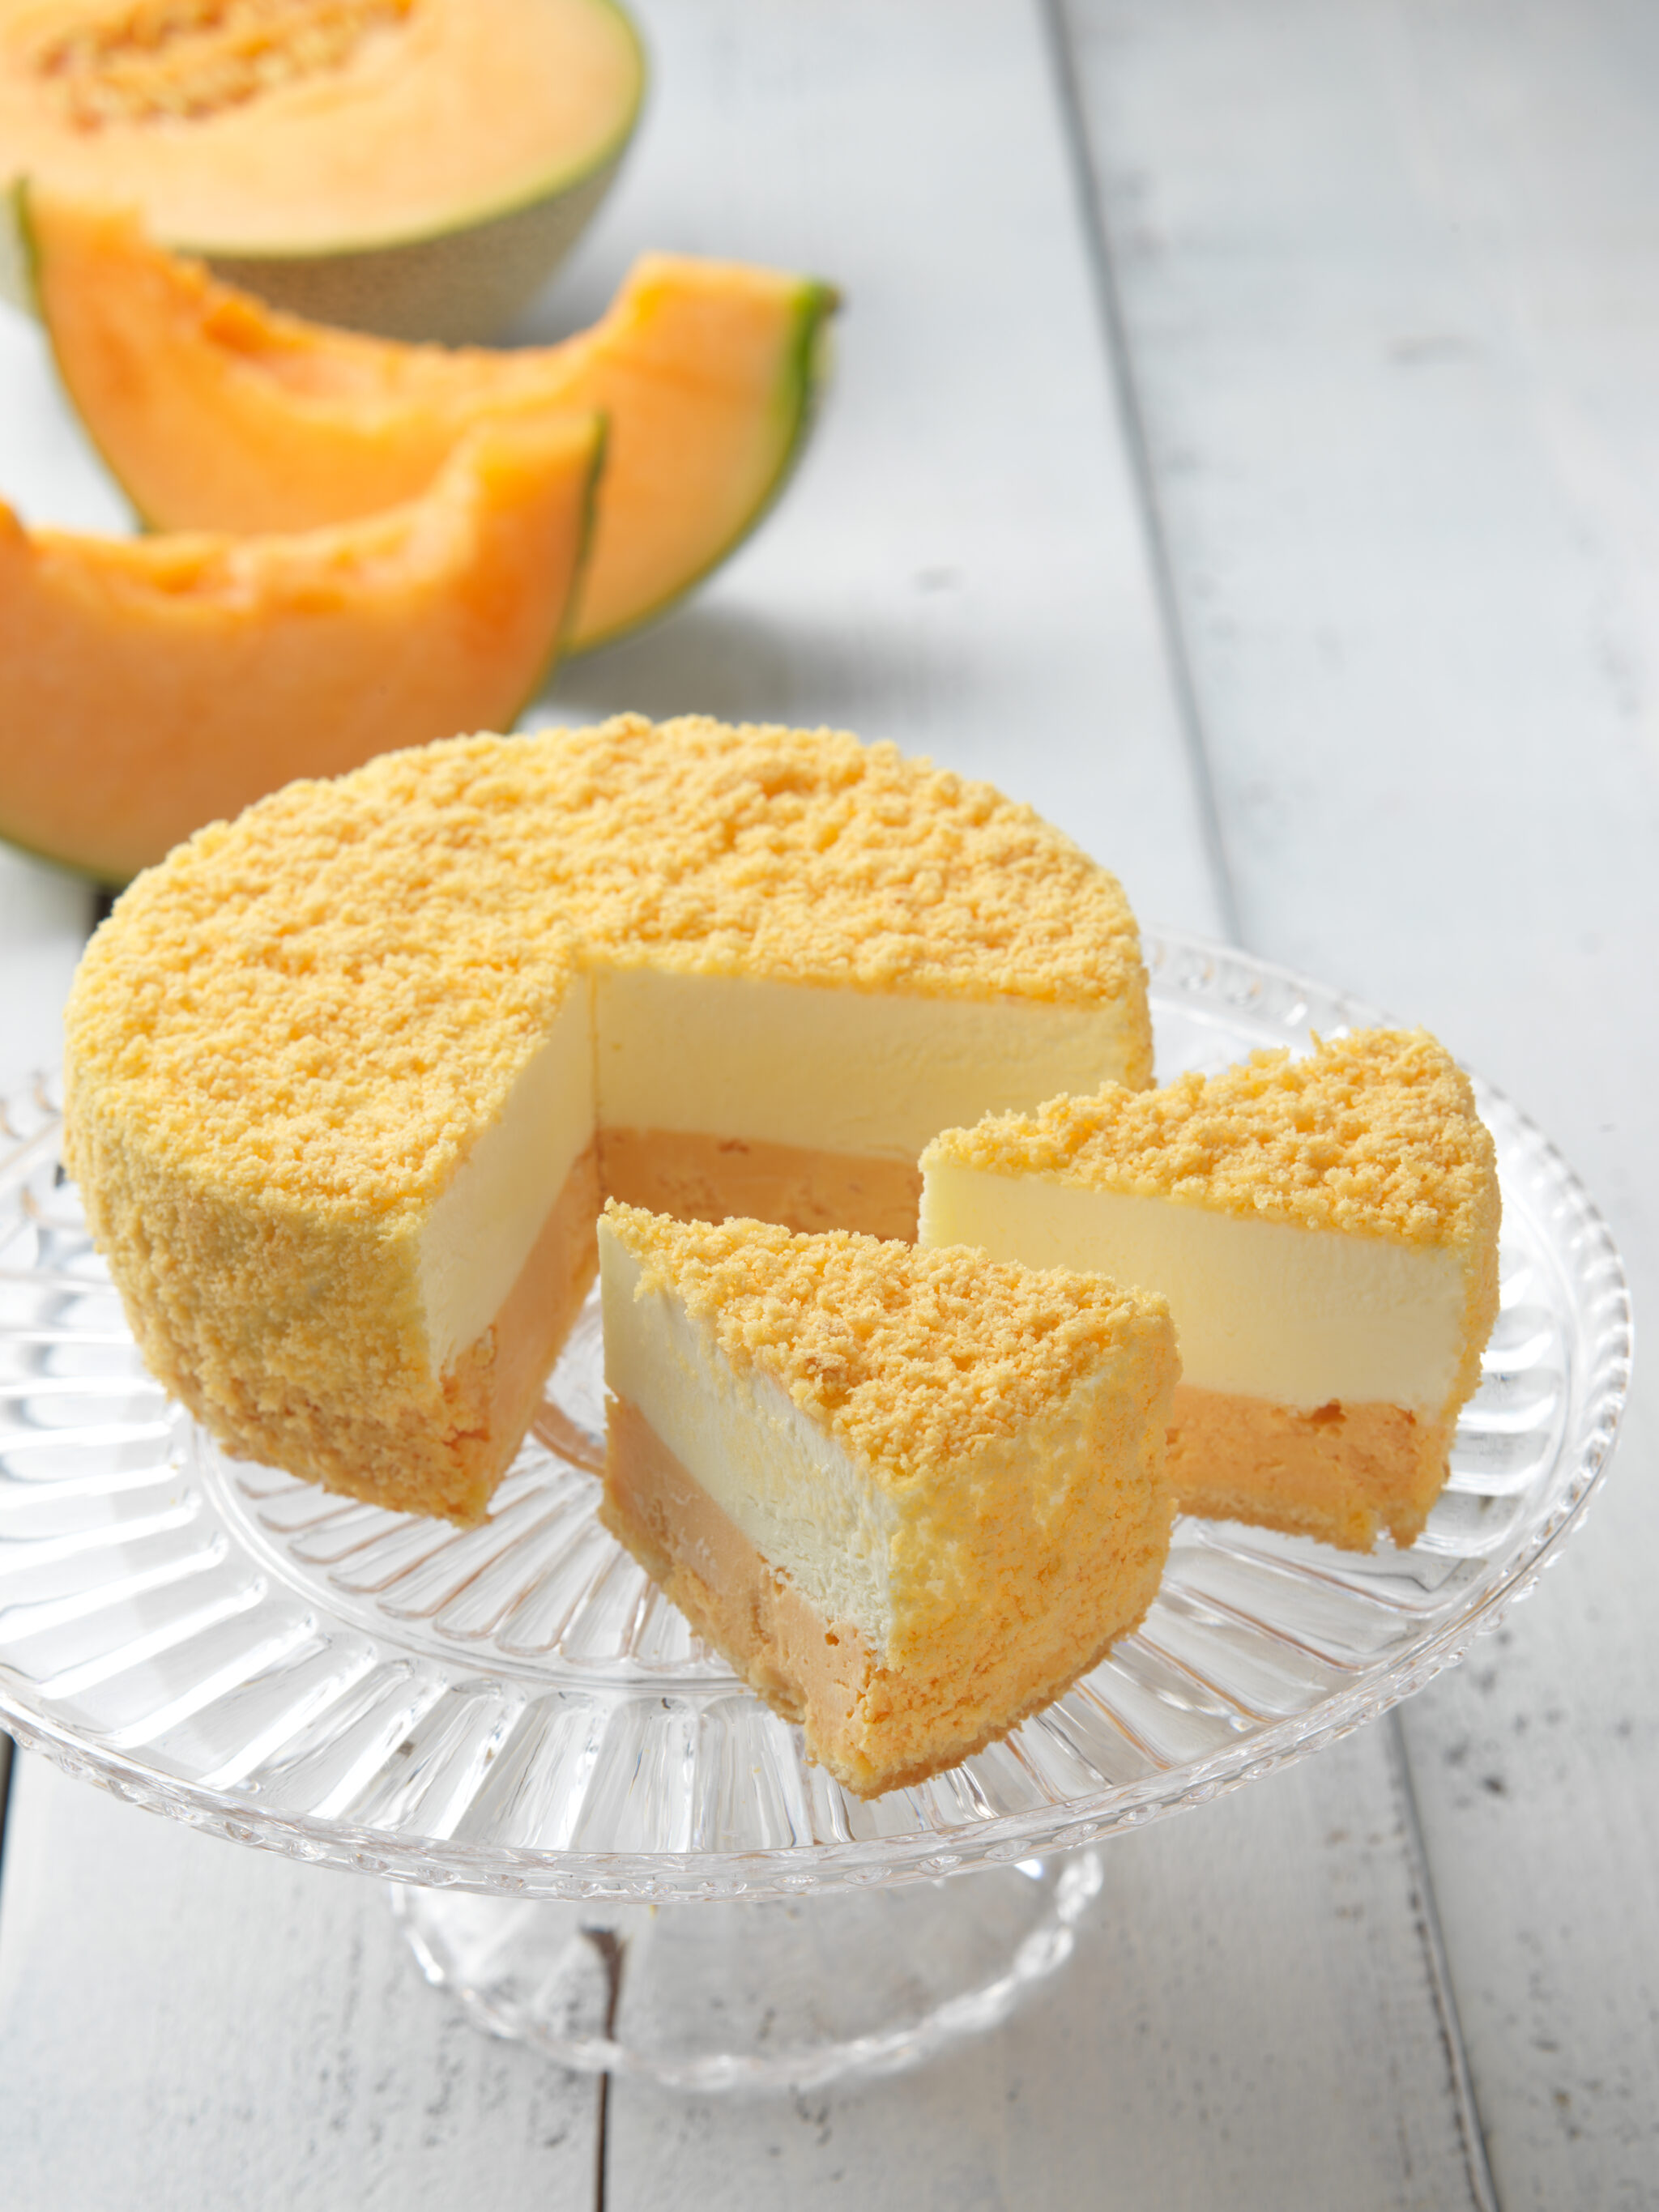 Melon Fromage